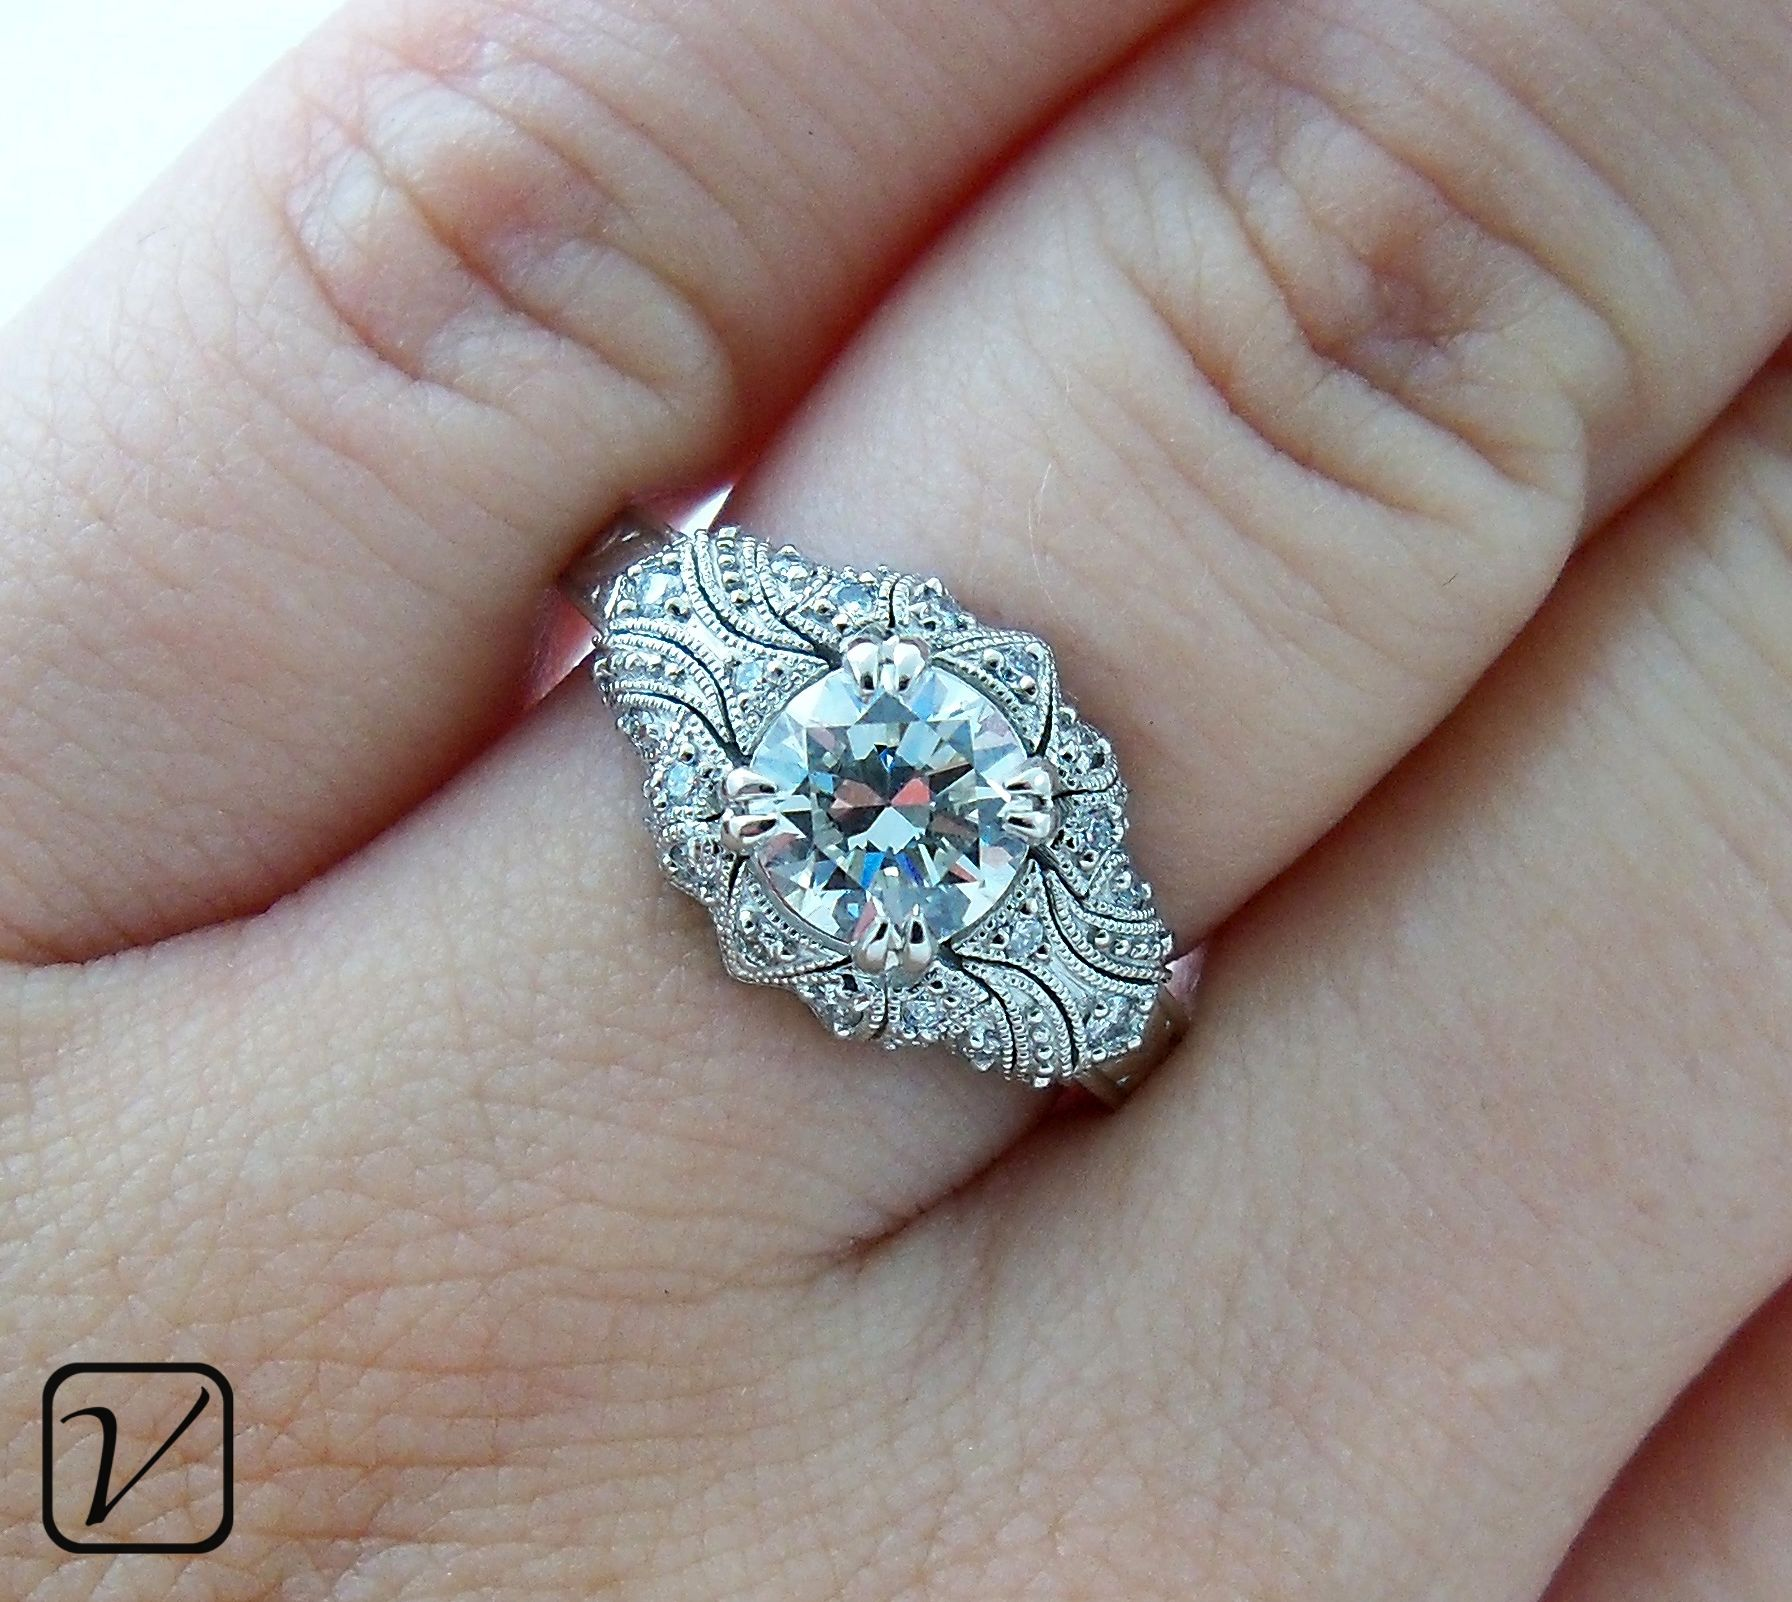 Amazing Antique Engagement Ring A Custom Design From Vanessa Nicole Jewels LOVE